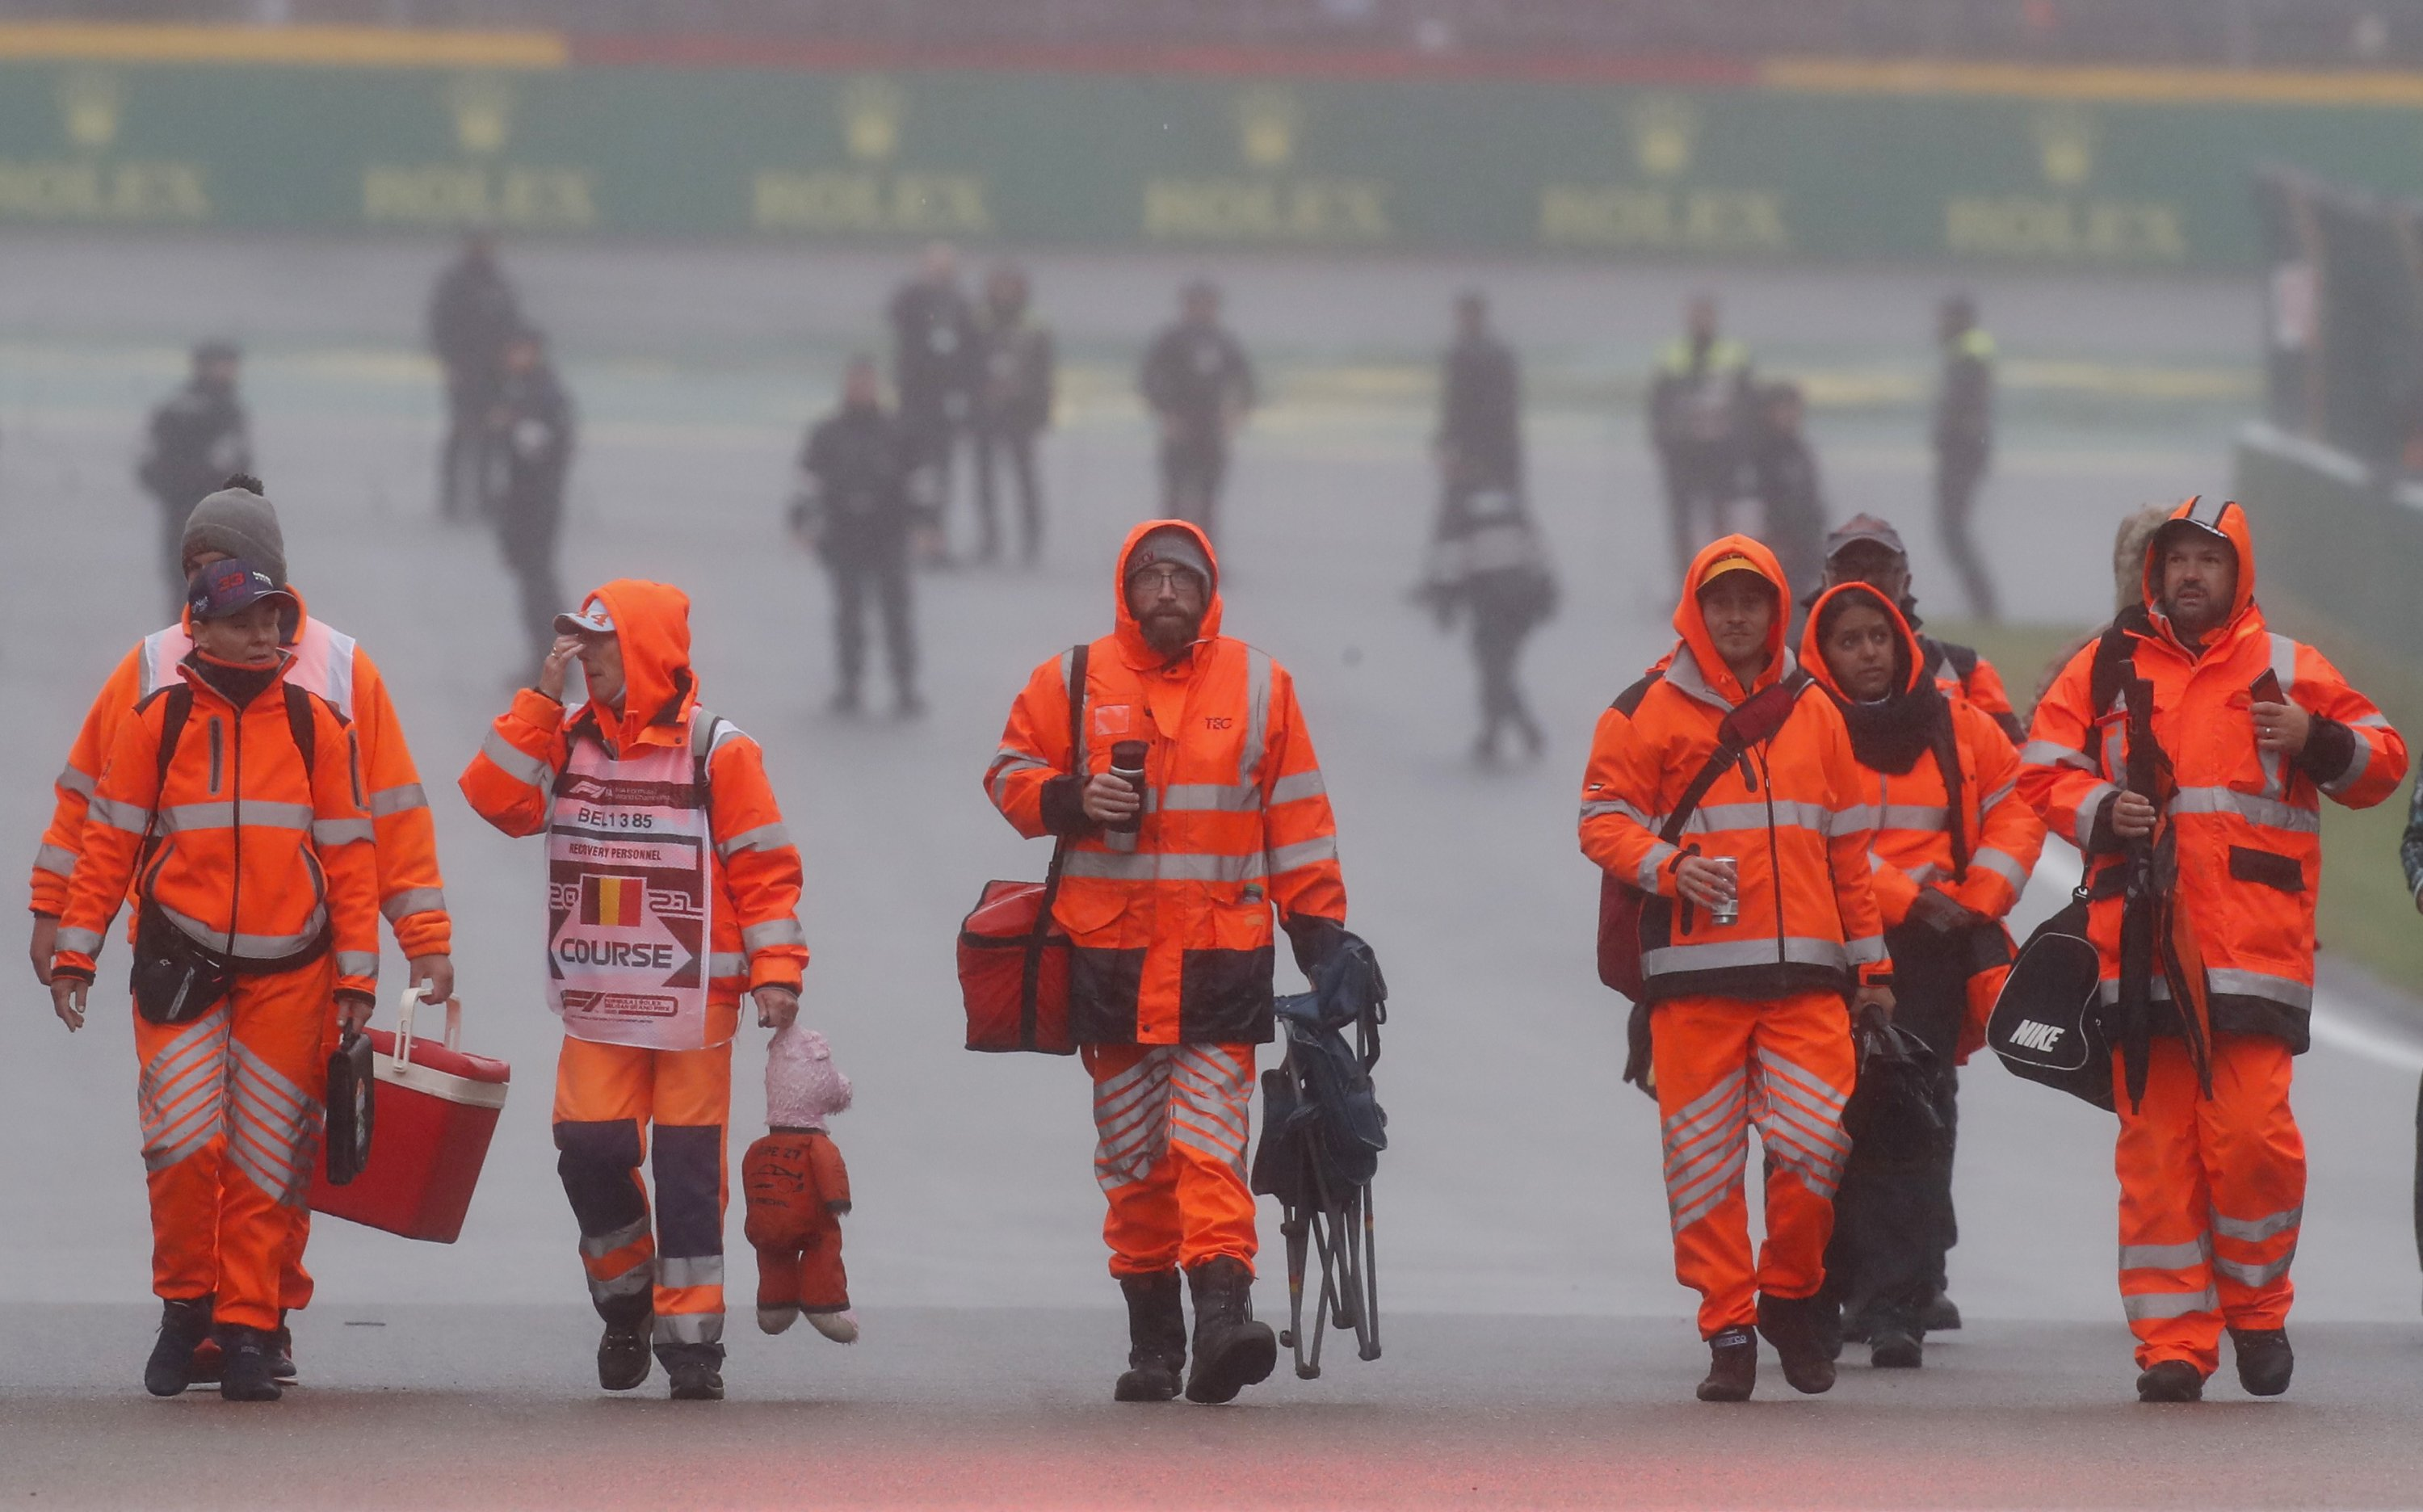 Formula One F1, Belgian Grand Prix, takes place under heavy rain in Spa-Francorchamps, Spa, Belgium, Aug. 29, 2021. (REUTERS Photo)